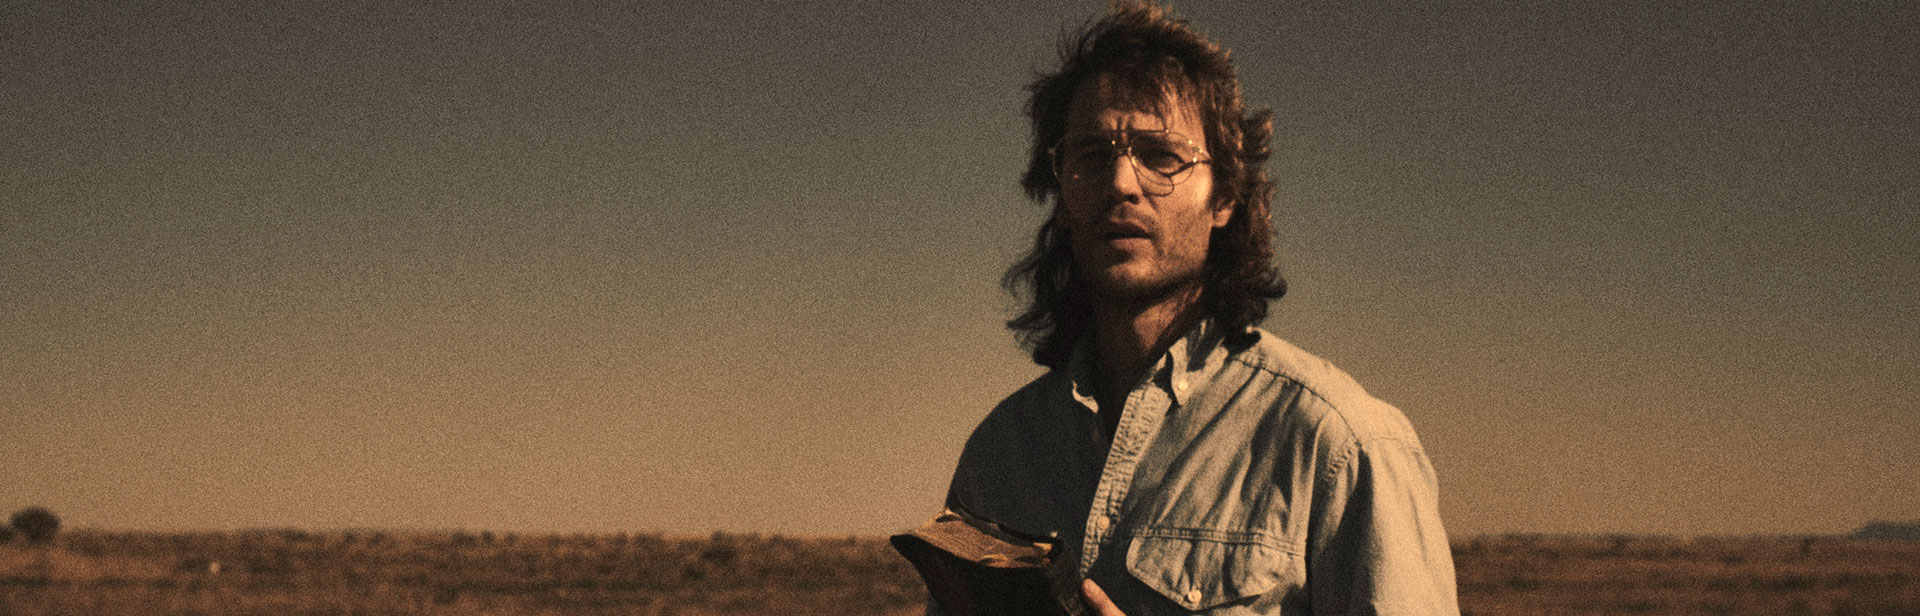 ​WACO: The story that shook the world